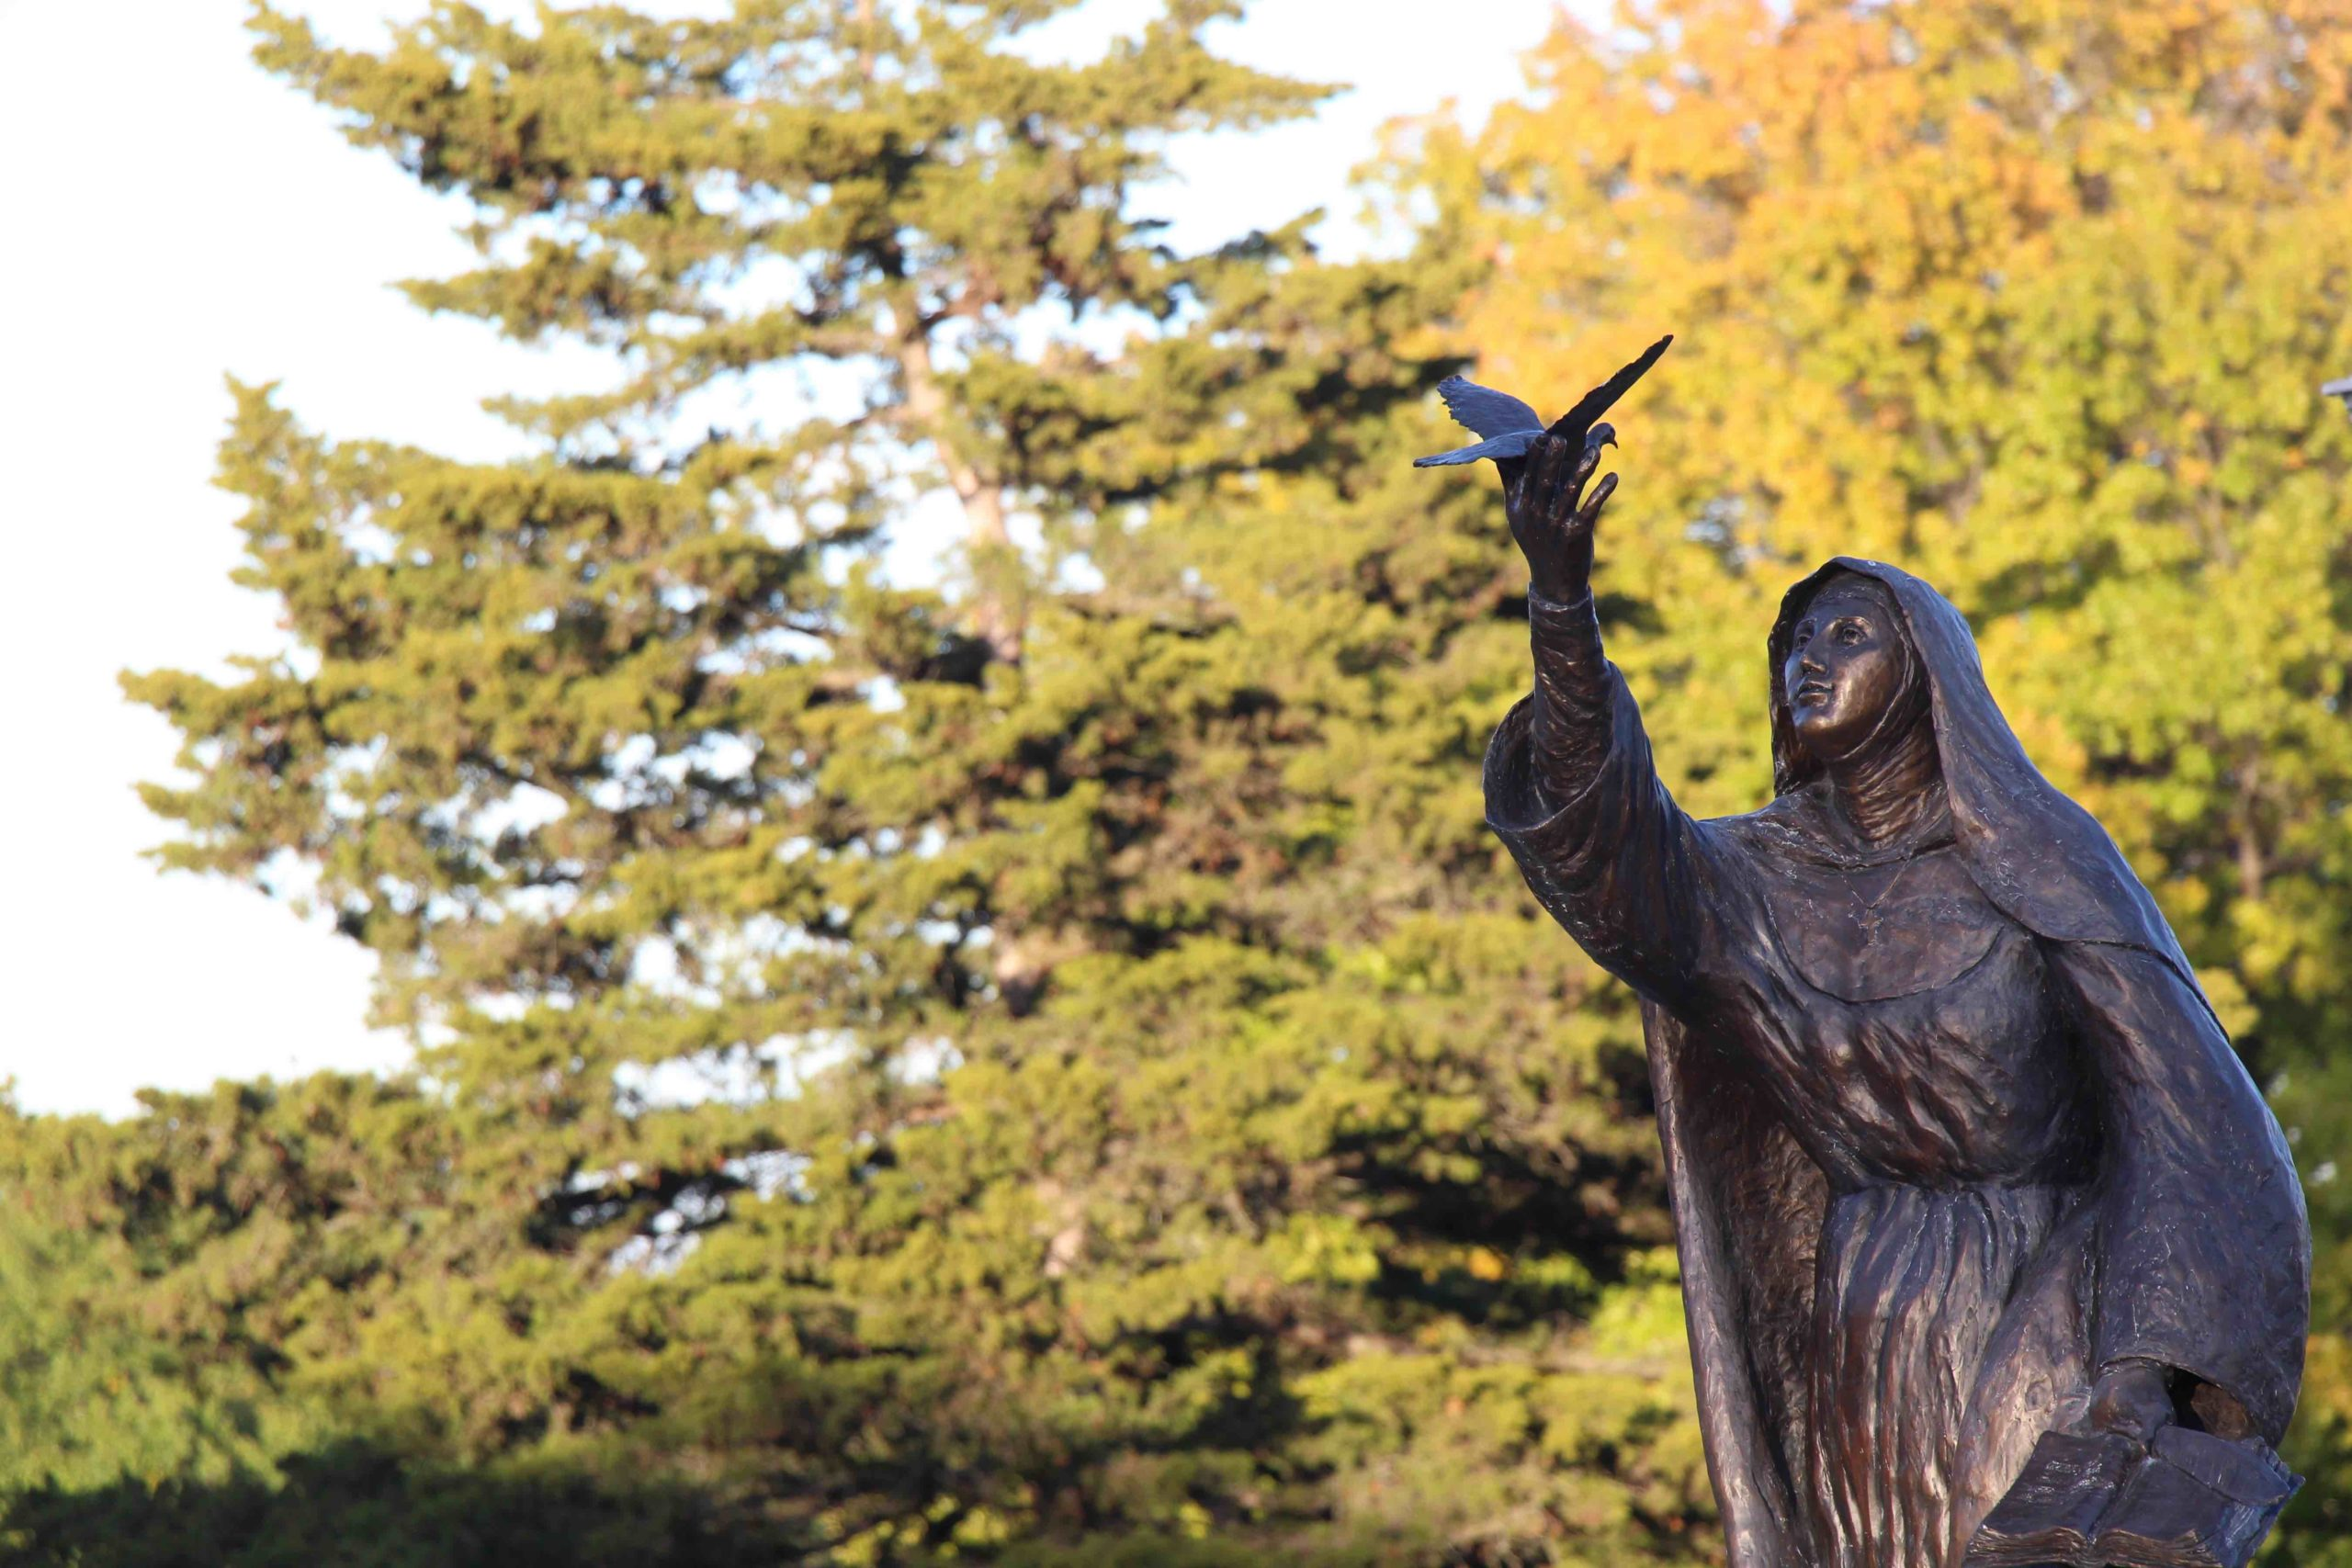 The statue of St. Teresa of Avila with fall foliage in the background.